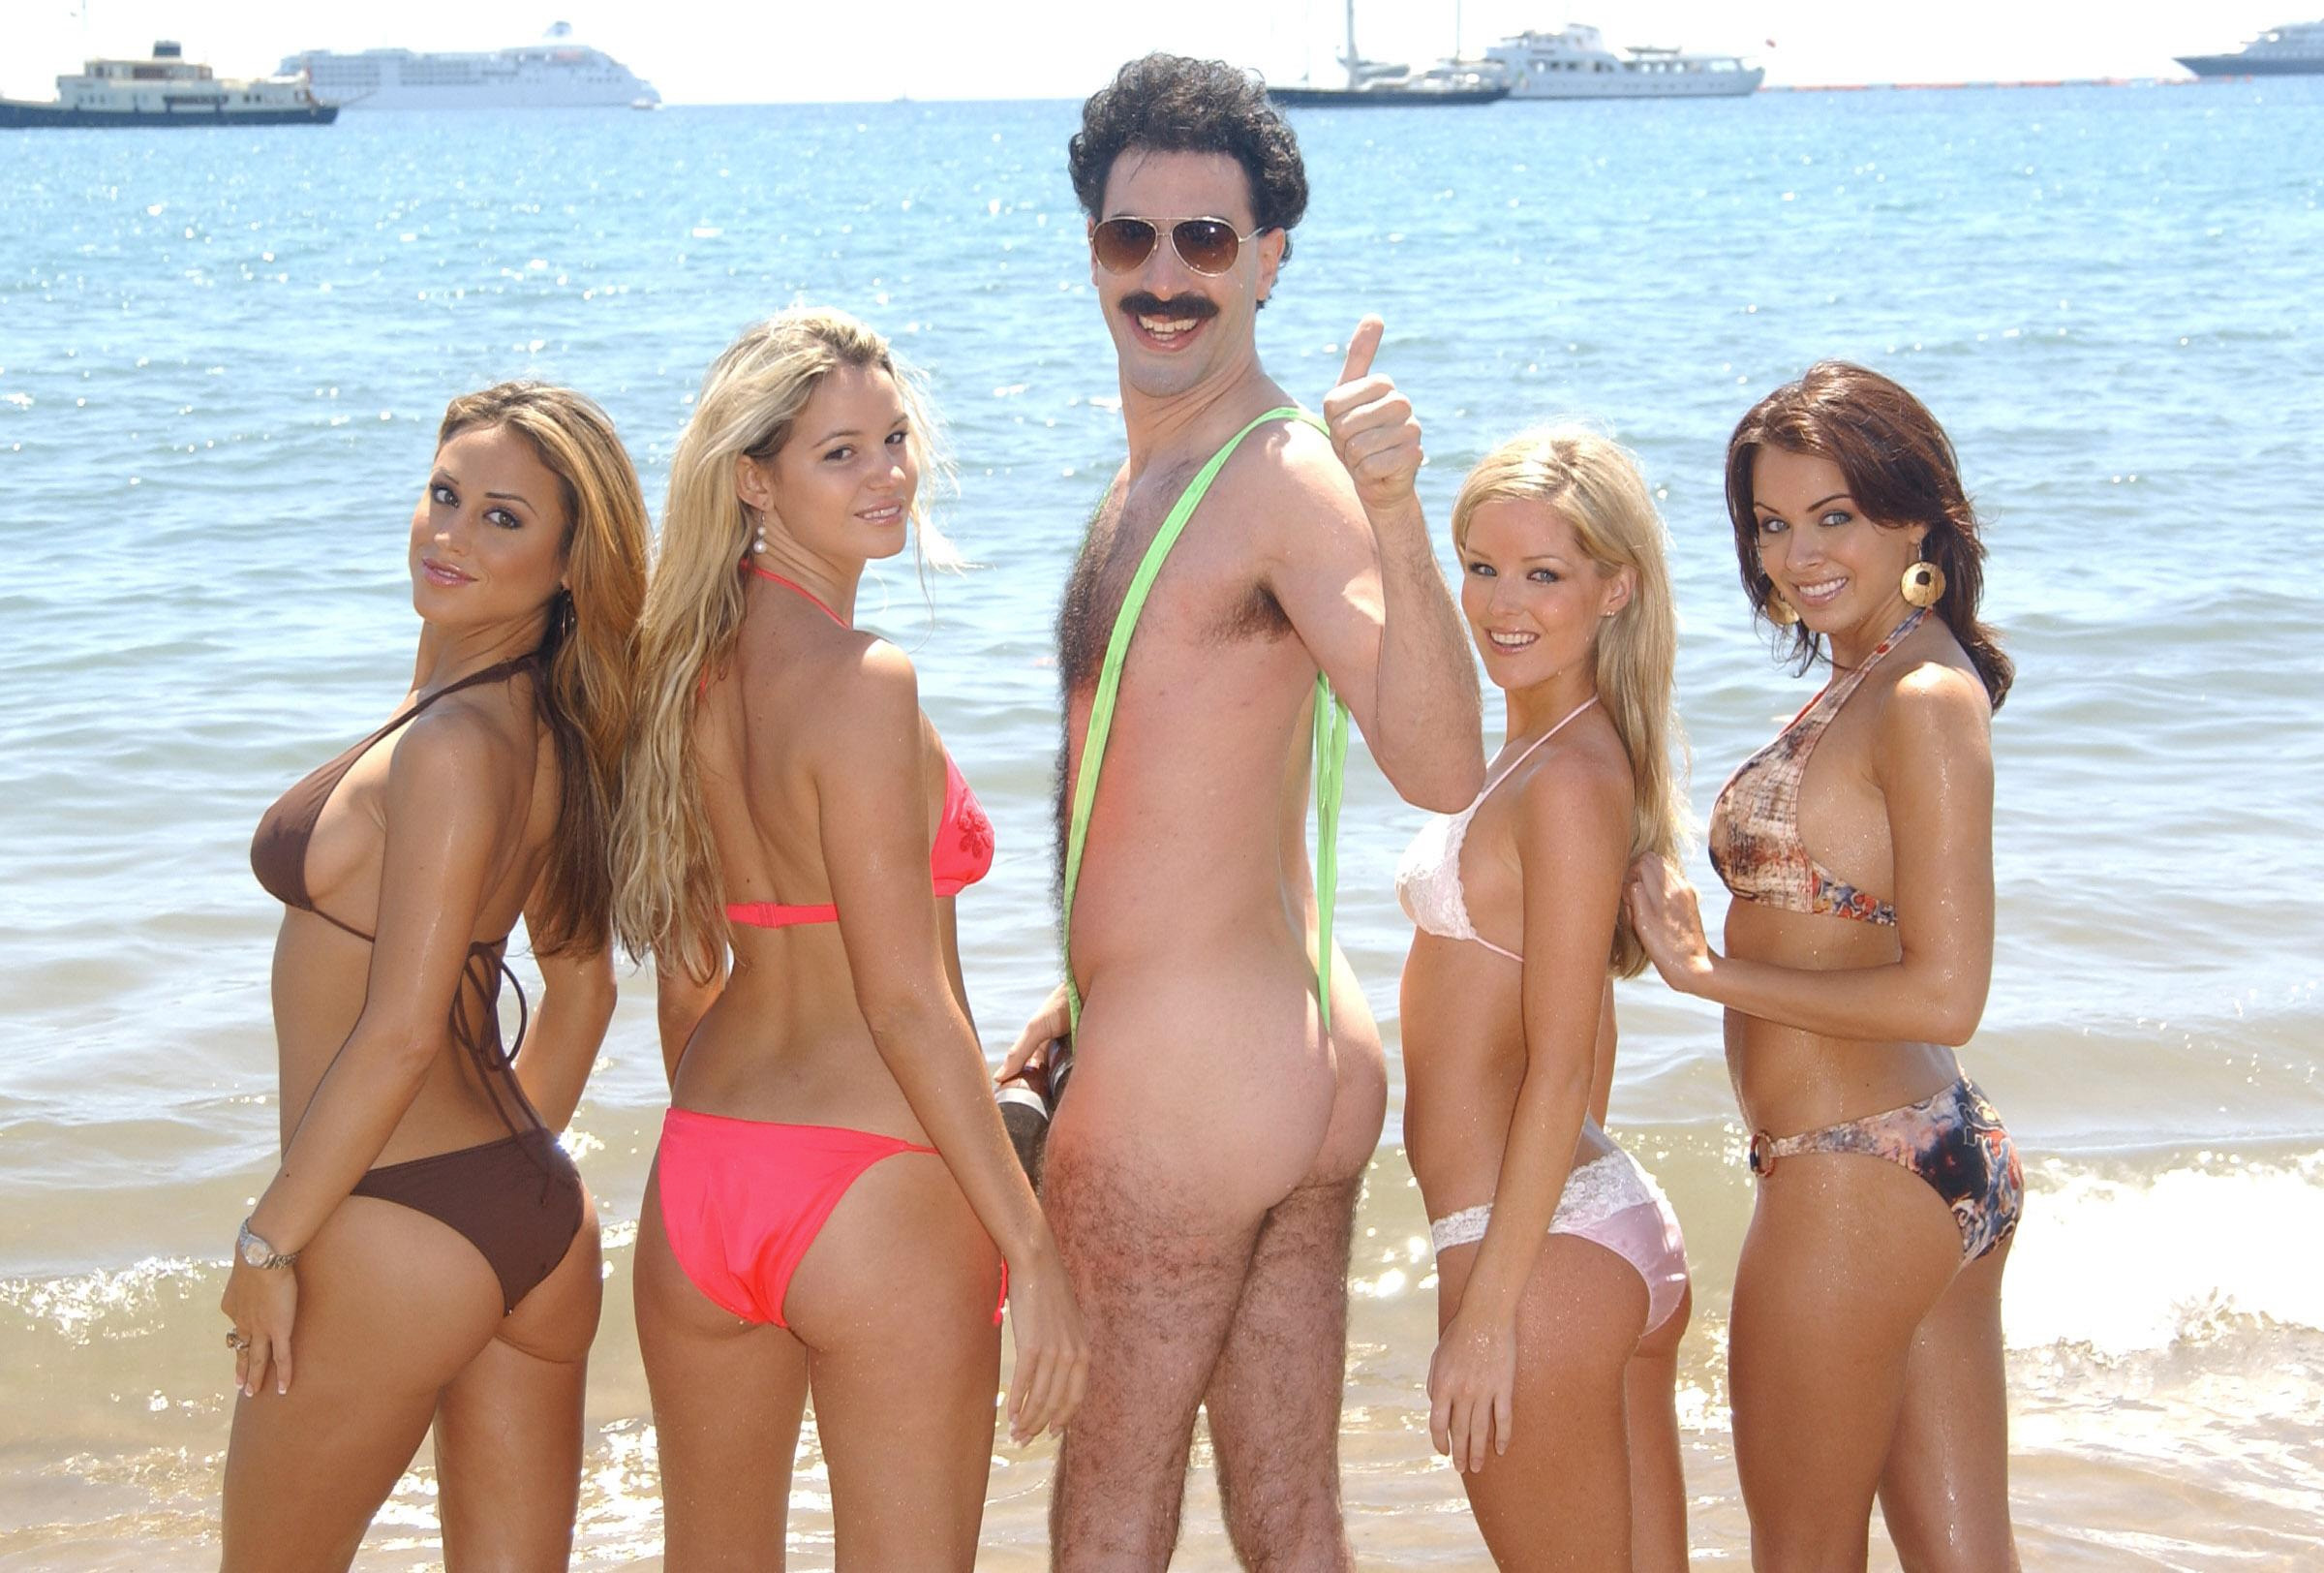 ef605eb736 Sacha Baron Cohen Pays Fines For Guys Dressed In Borat Mankinis